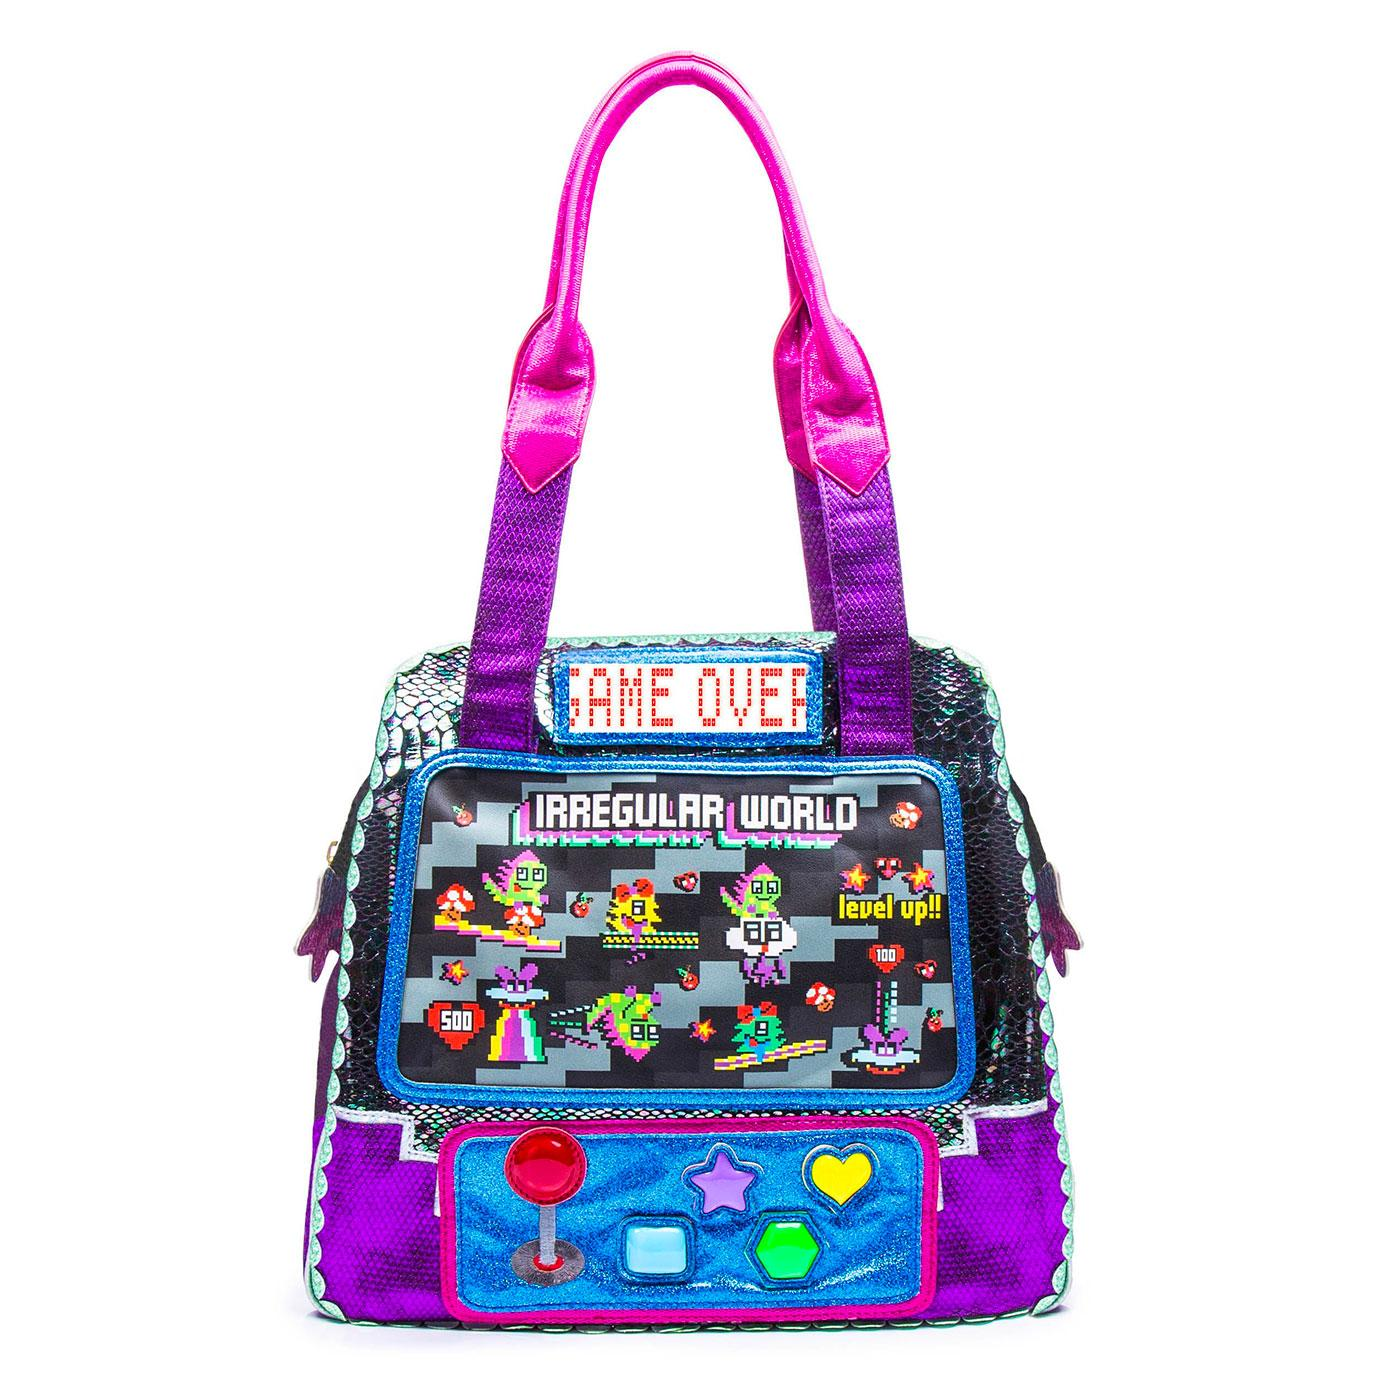 Wowcade IRREGULAR CHOICE Retro Gaming Handbag B